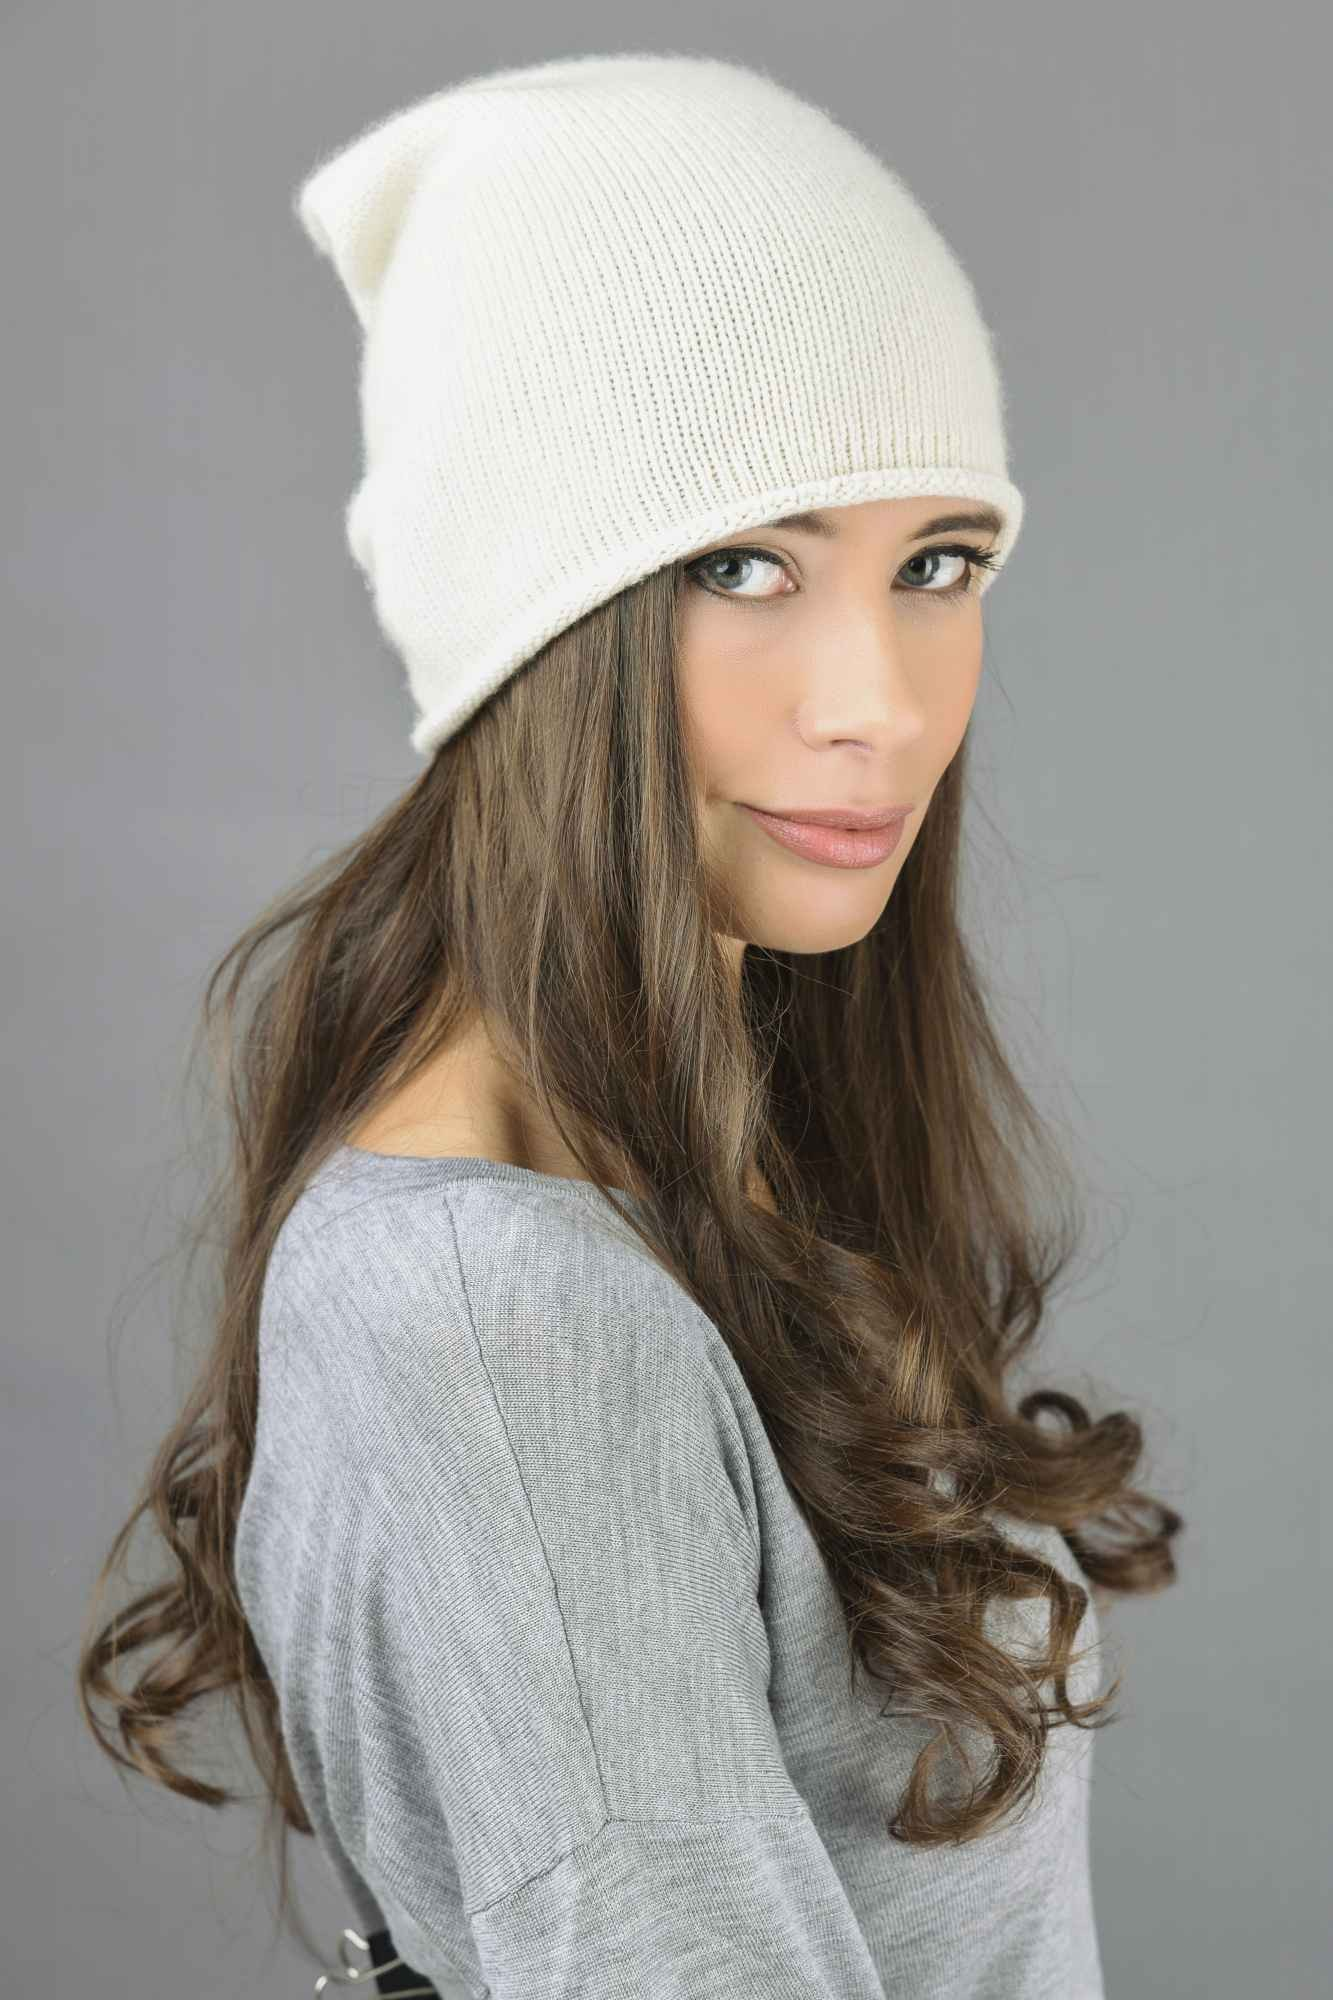 a30ee104a79563 Pure Cashmere Plain Knitted Slouchy Beanie Hat in Cream White | Italy in  Cashmere UK